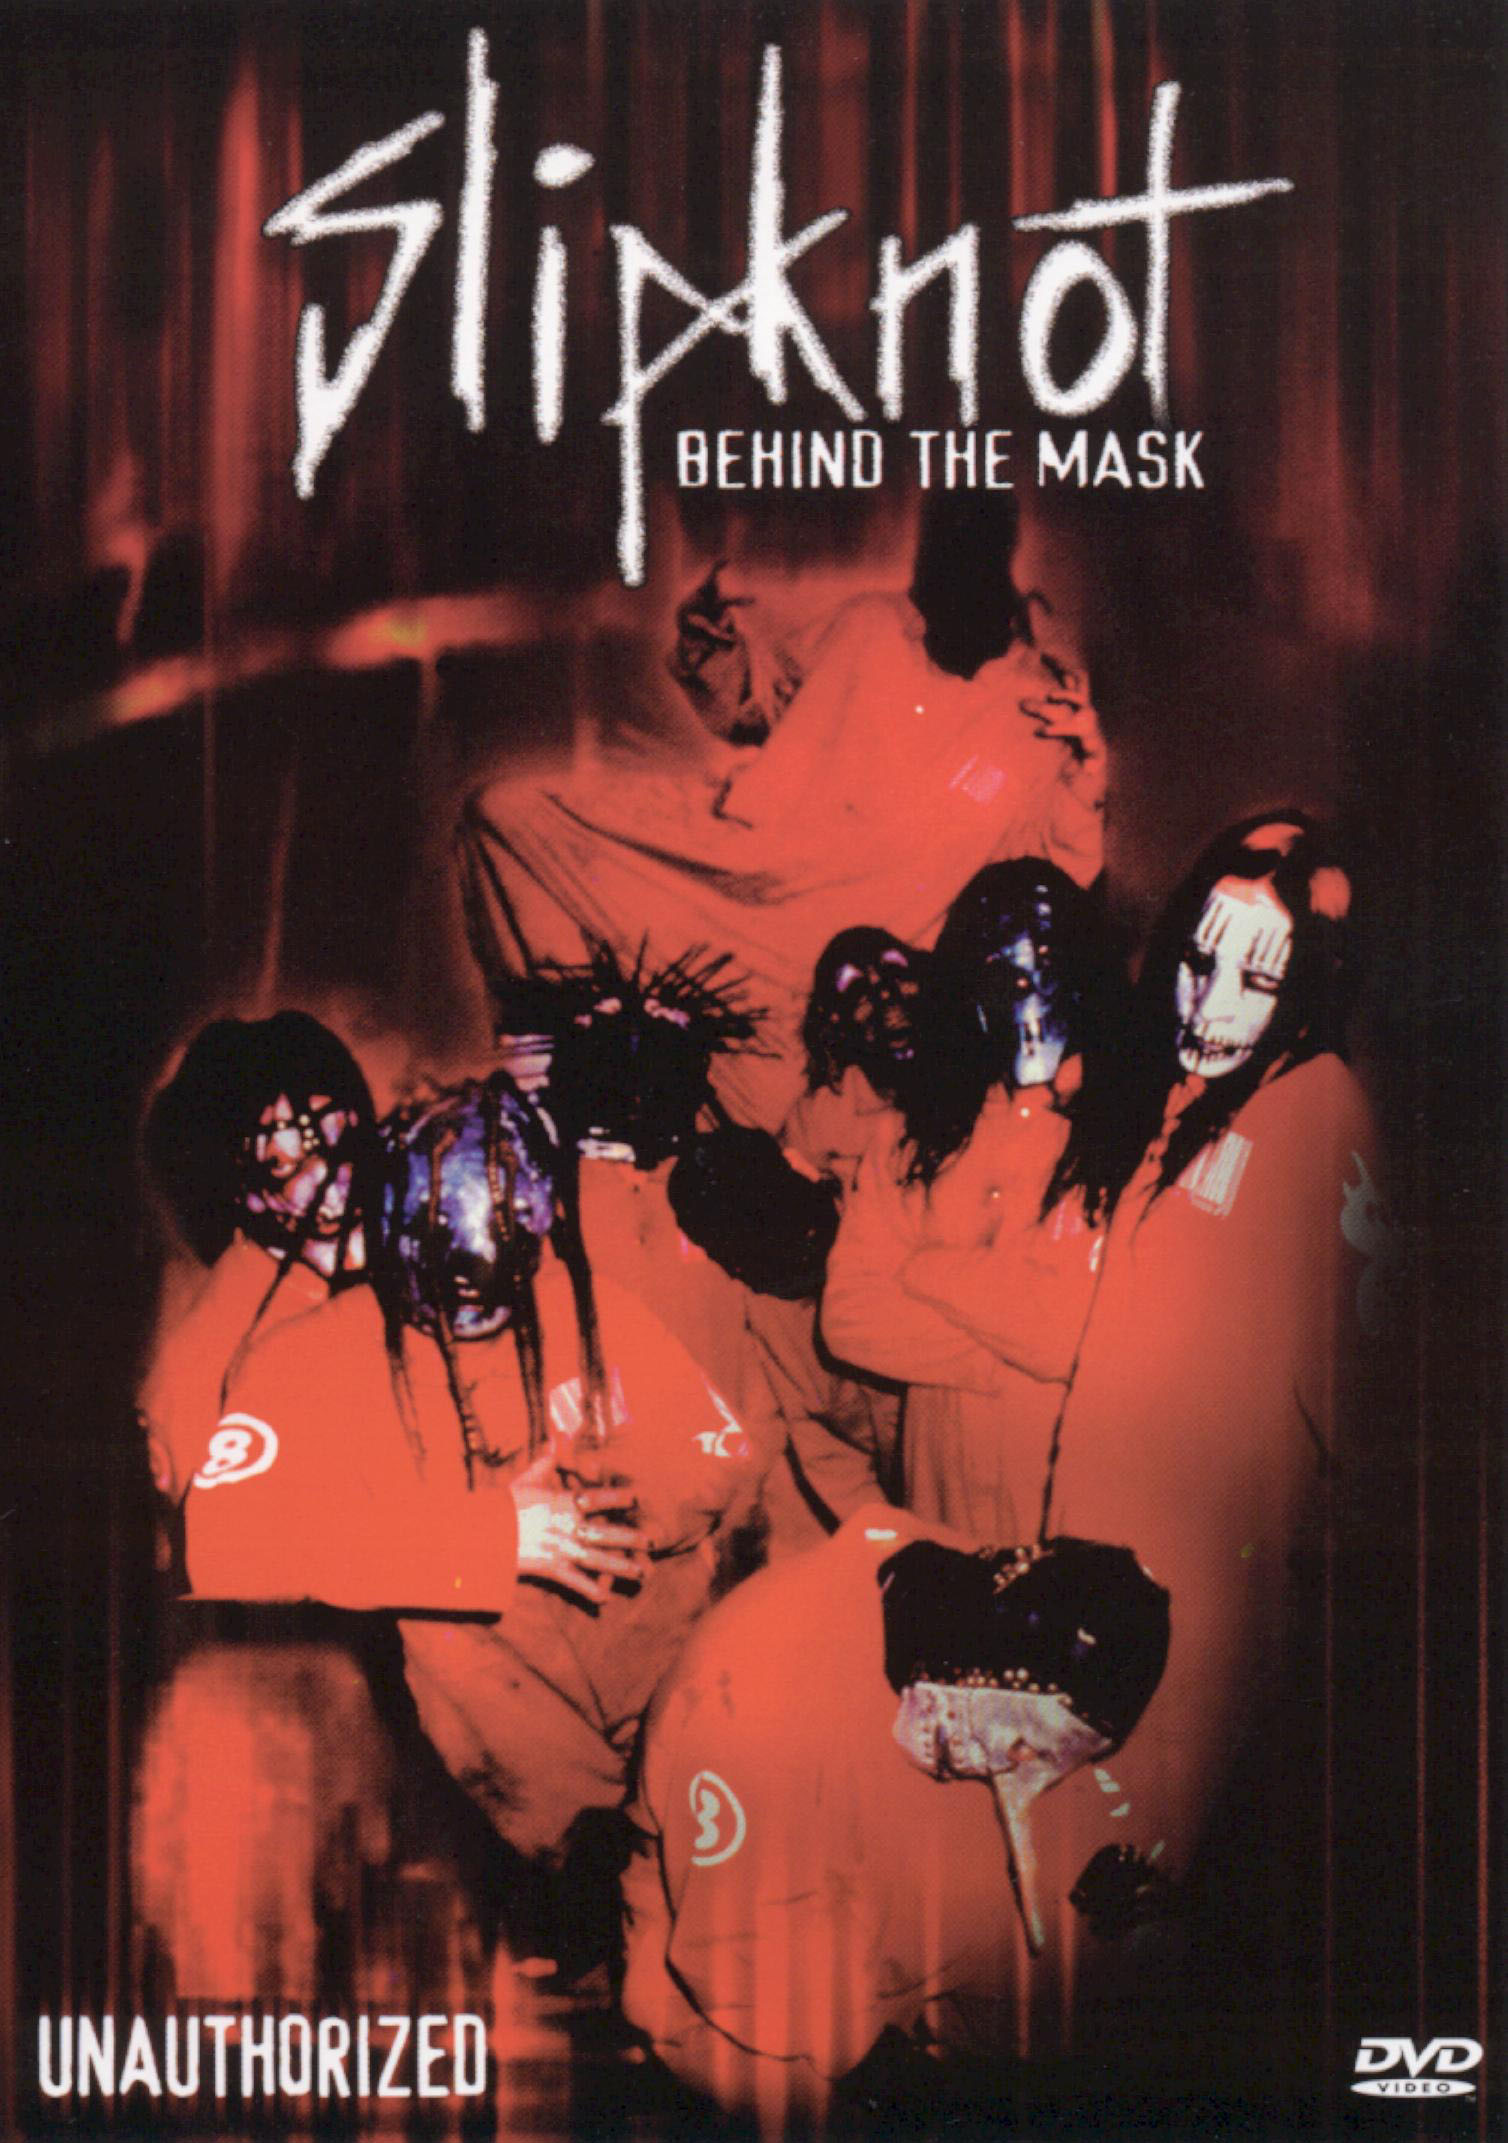 Slipknot: Behind the Mask - Unauthorized